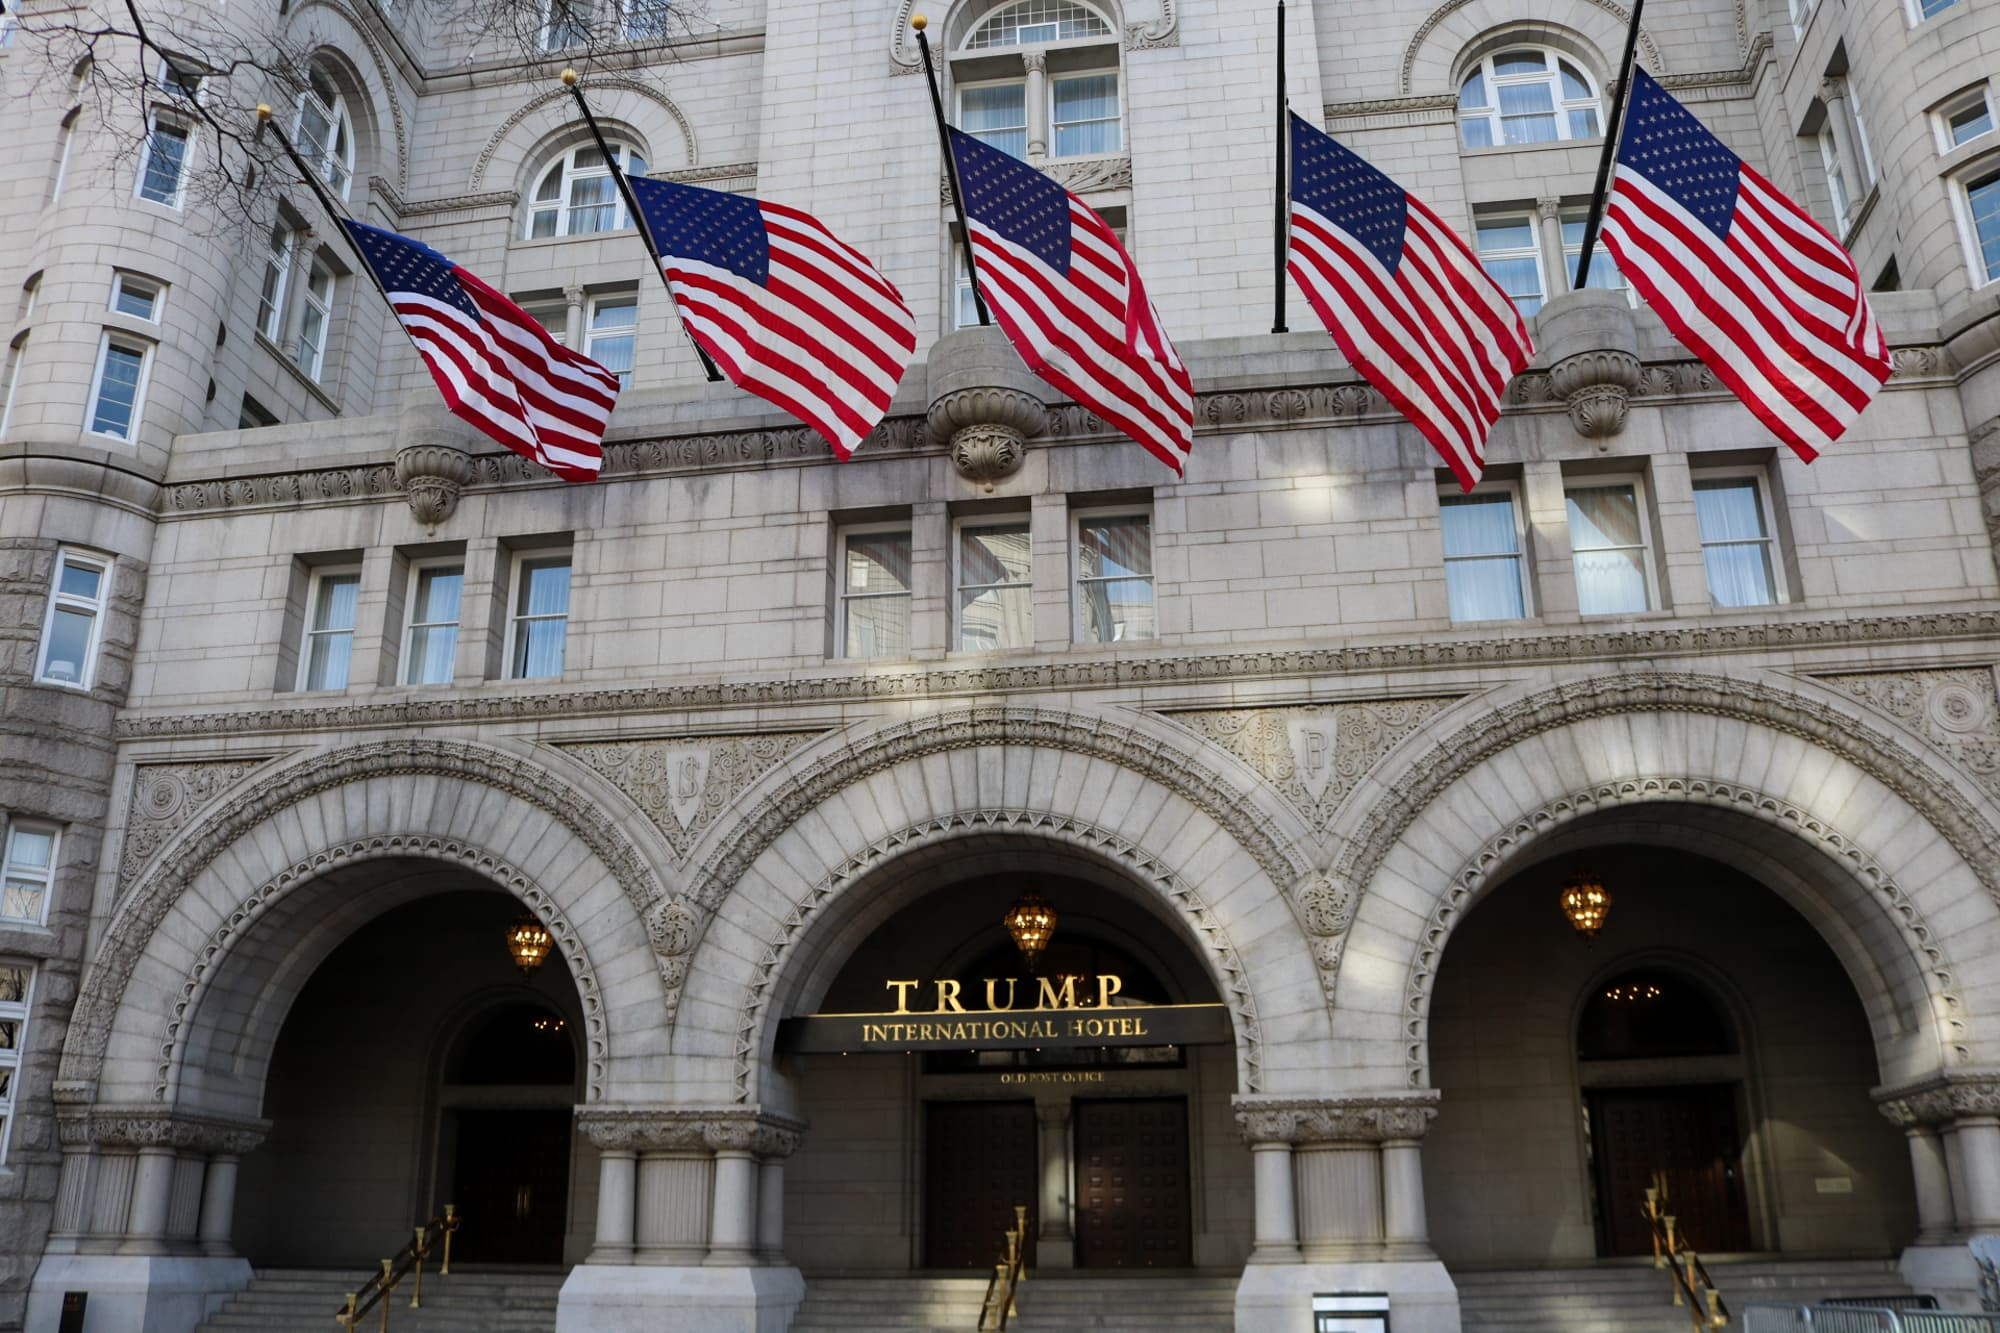 Former Trump officials and lobbyists dined with Zelensky campaign at Trump hotel months before infamous phone call